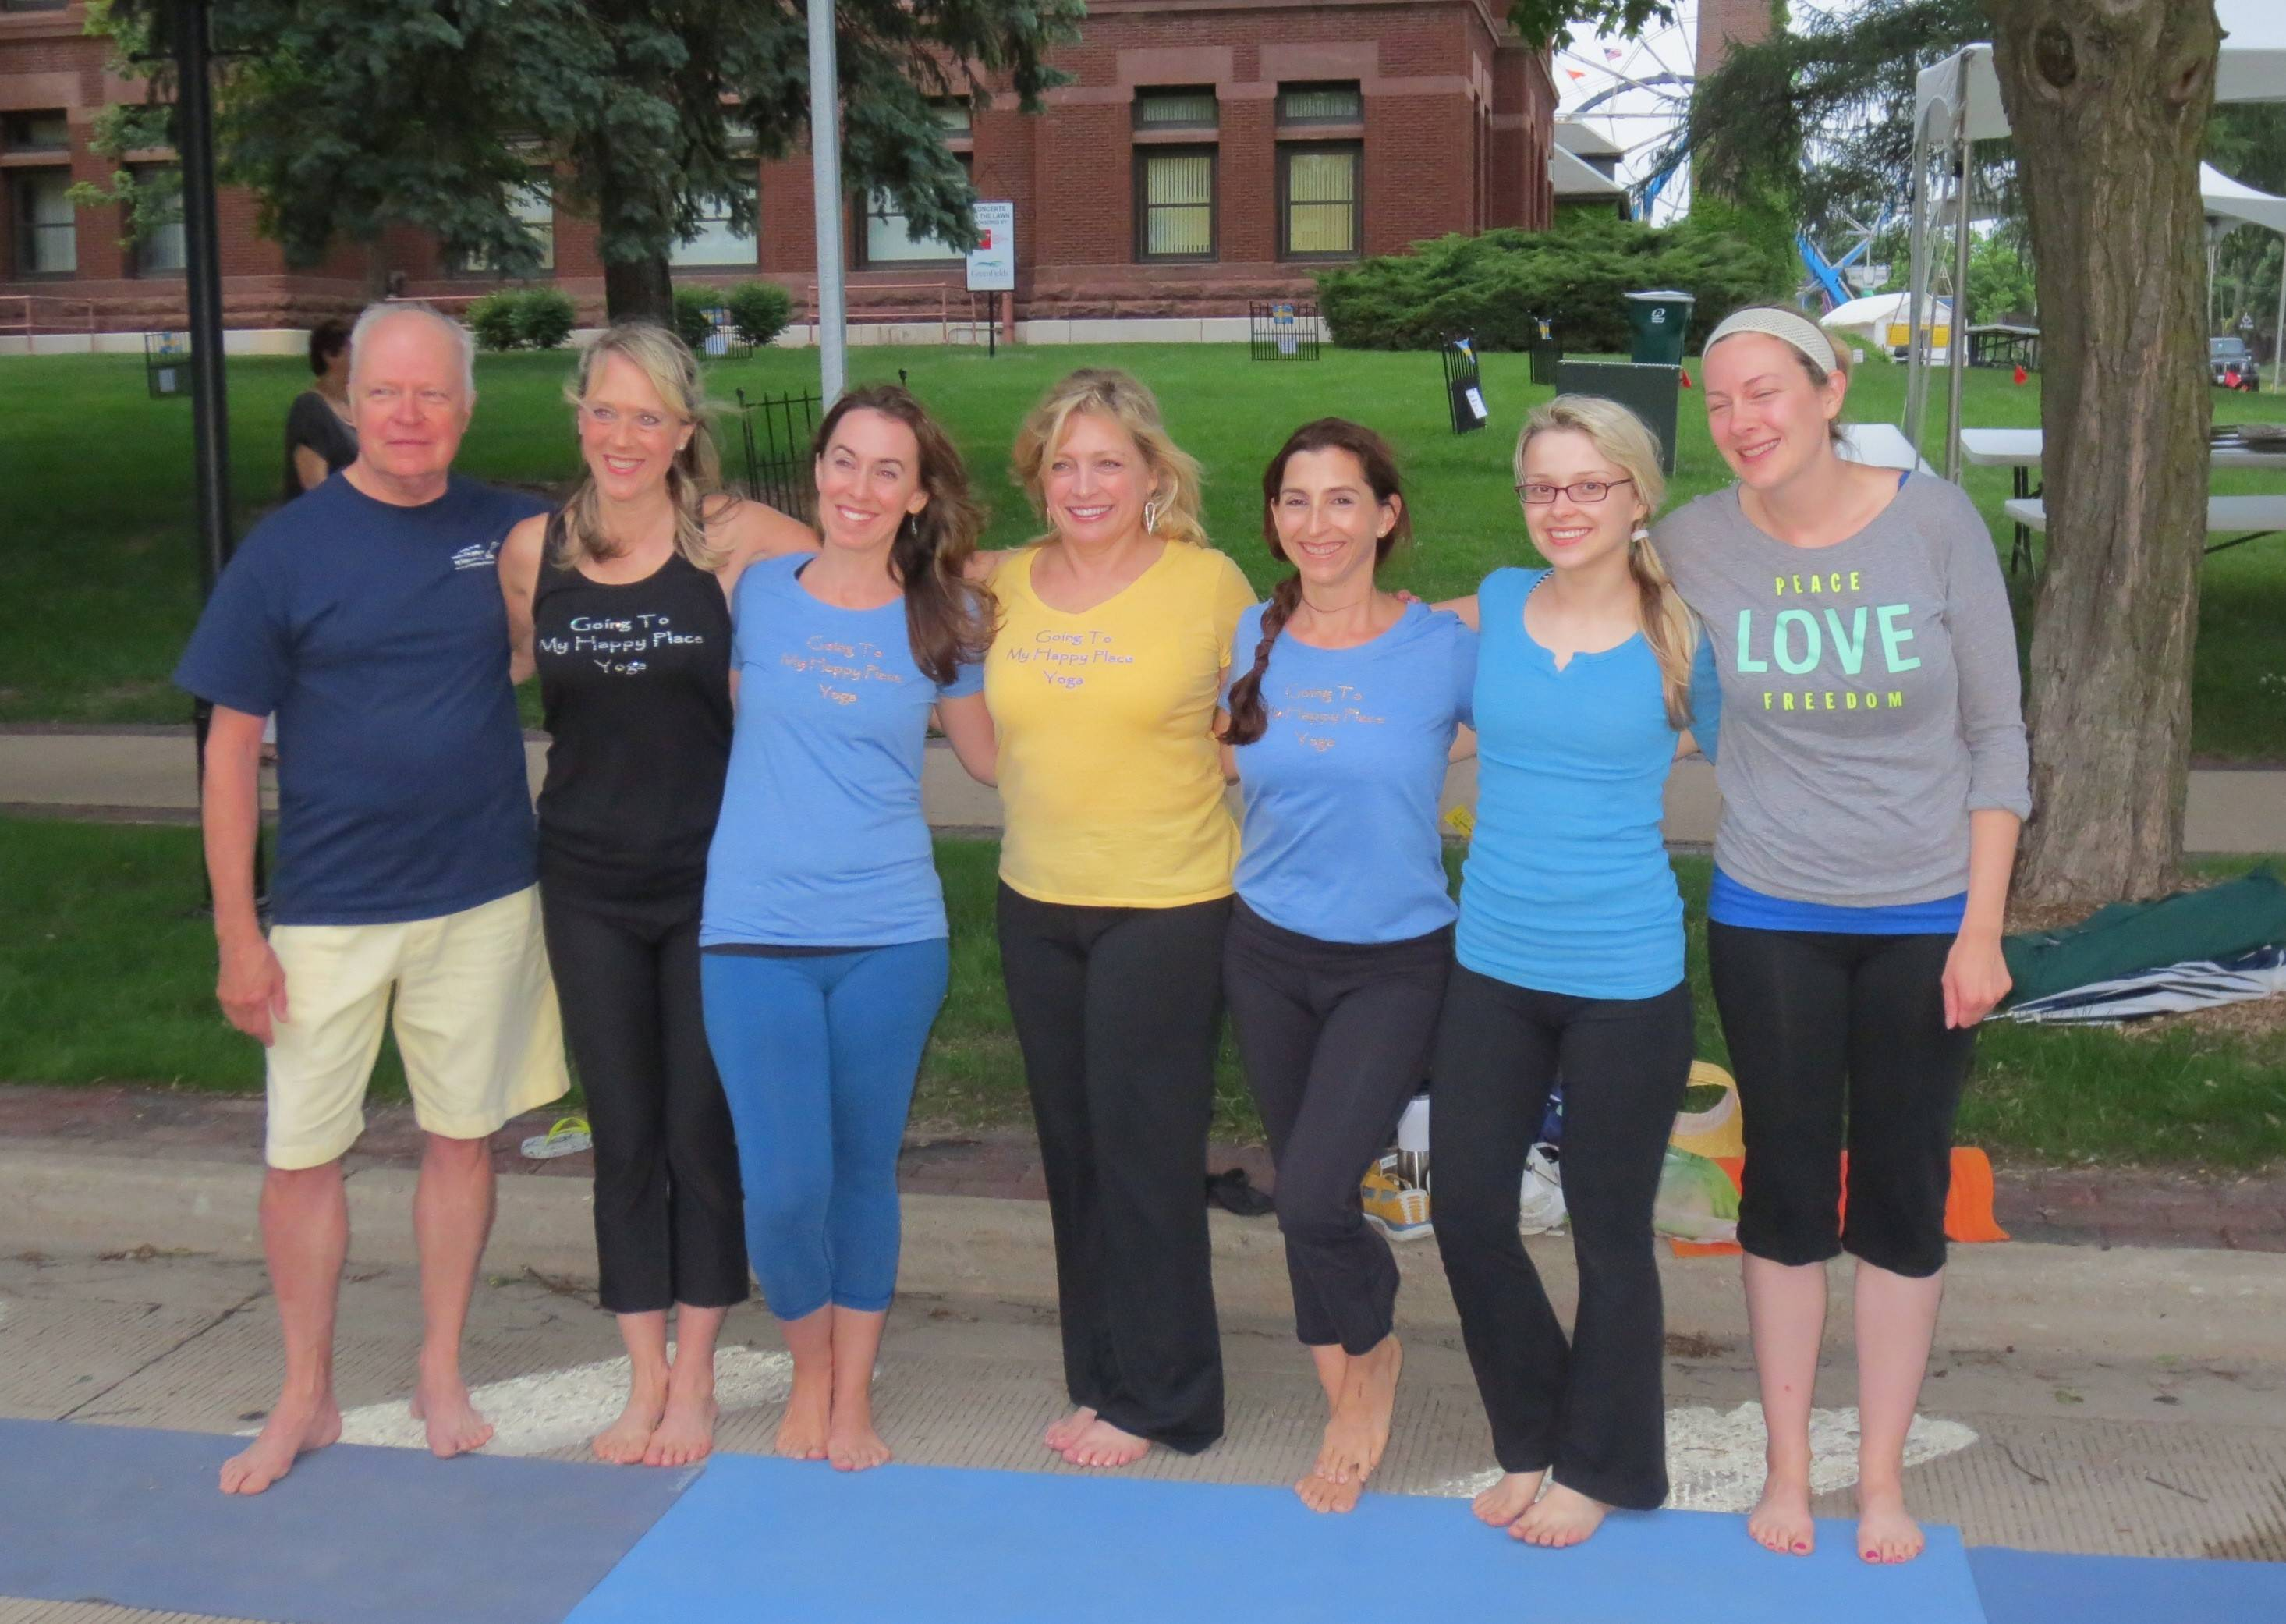 Very happy to officially kick off Swedish Days, some of Going To My Happy Place Yoga's Demo Team smiling are L-R, Richard Keslinke, Debbie Leoni, Rita Esparza, Laurie Milbourn, April Waldrop, Crystal Skipworth and Leah Kamm.